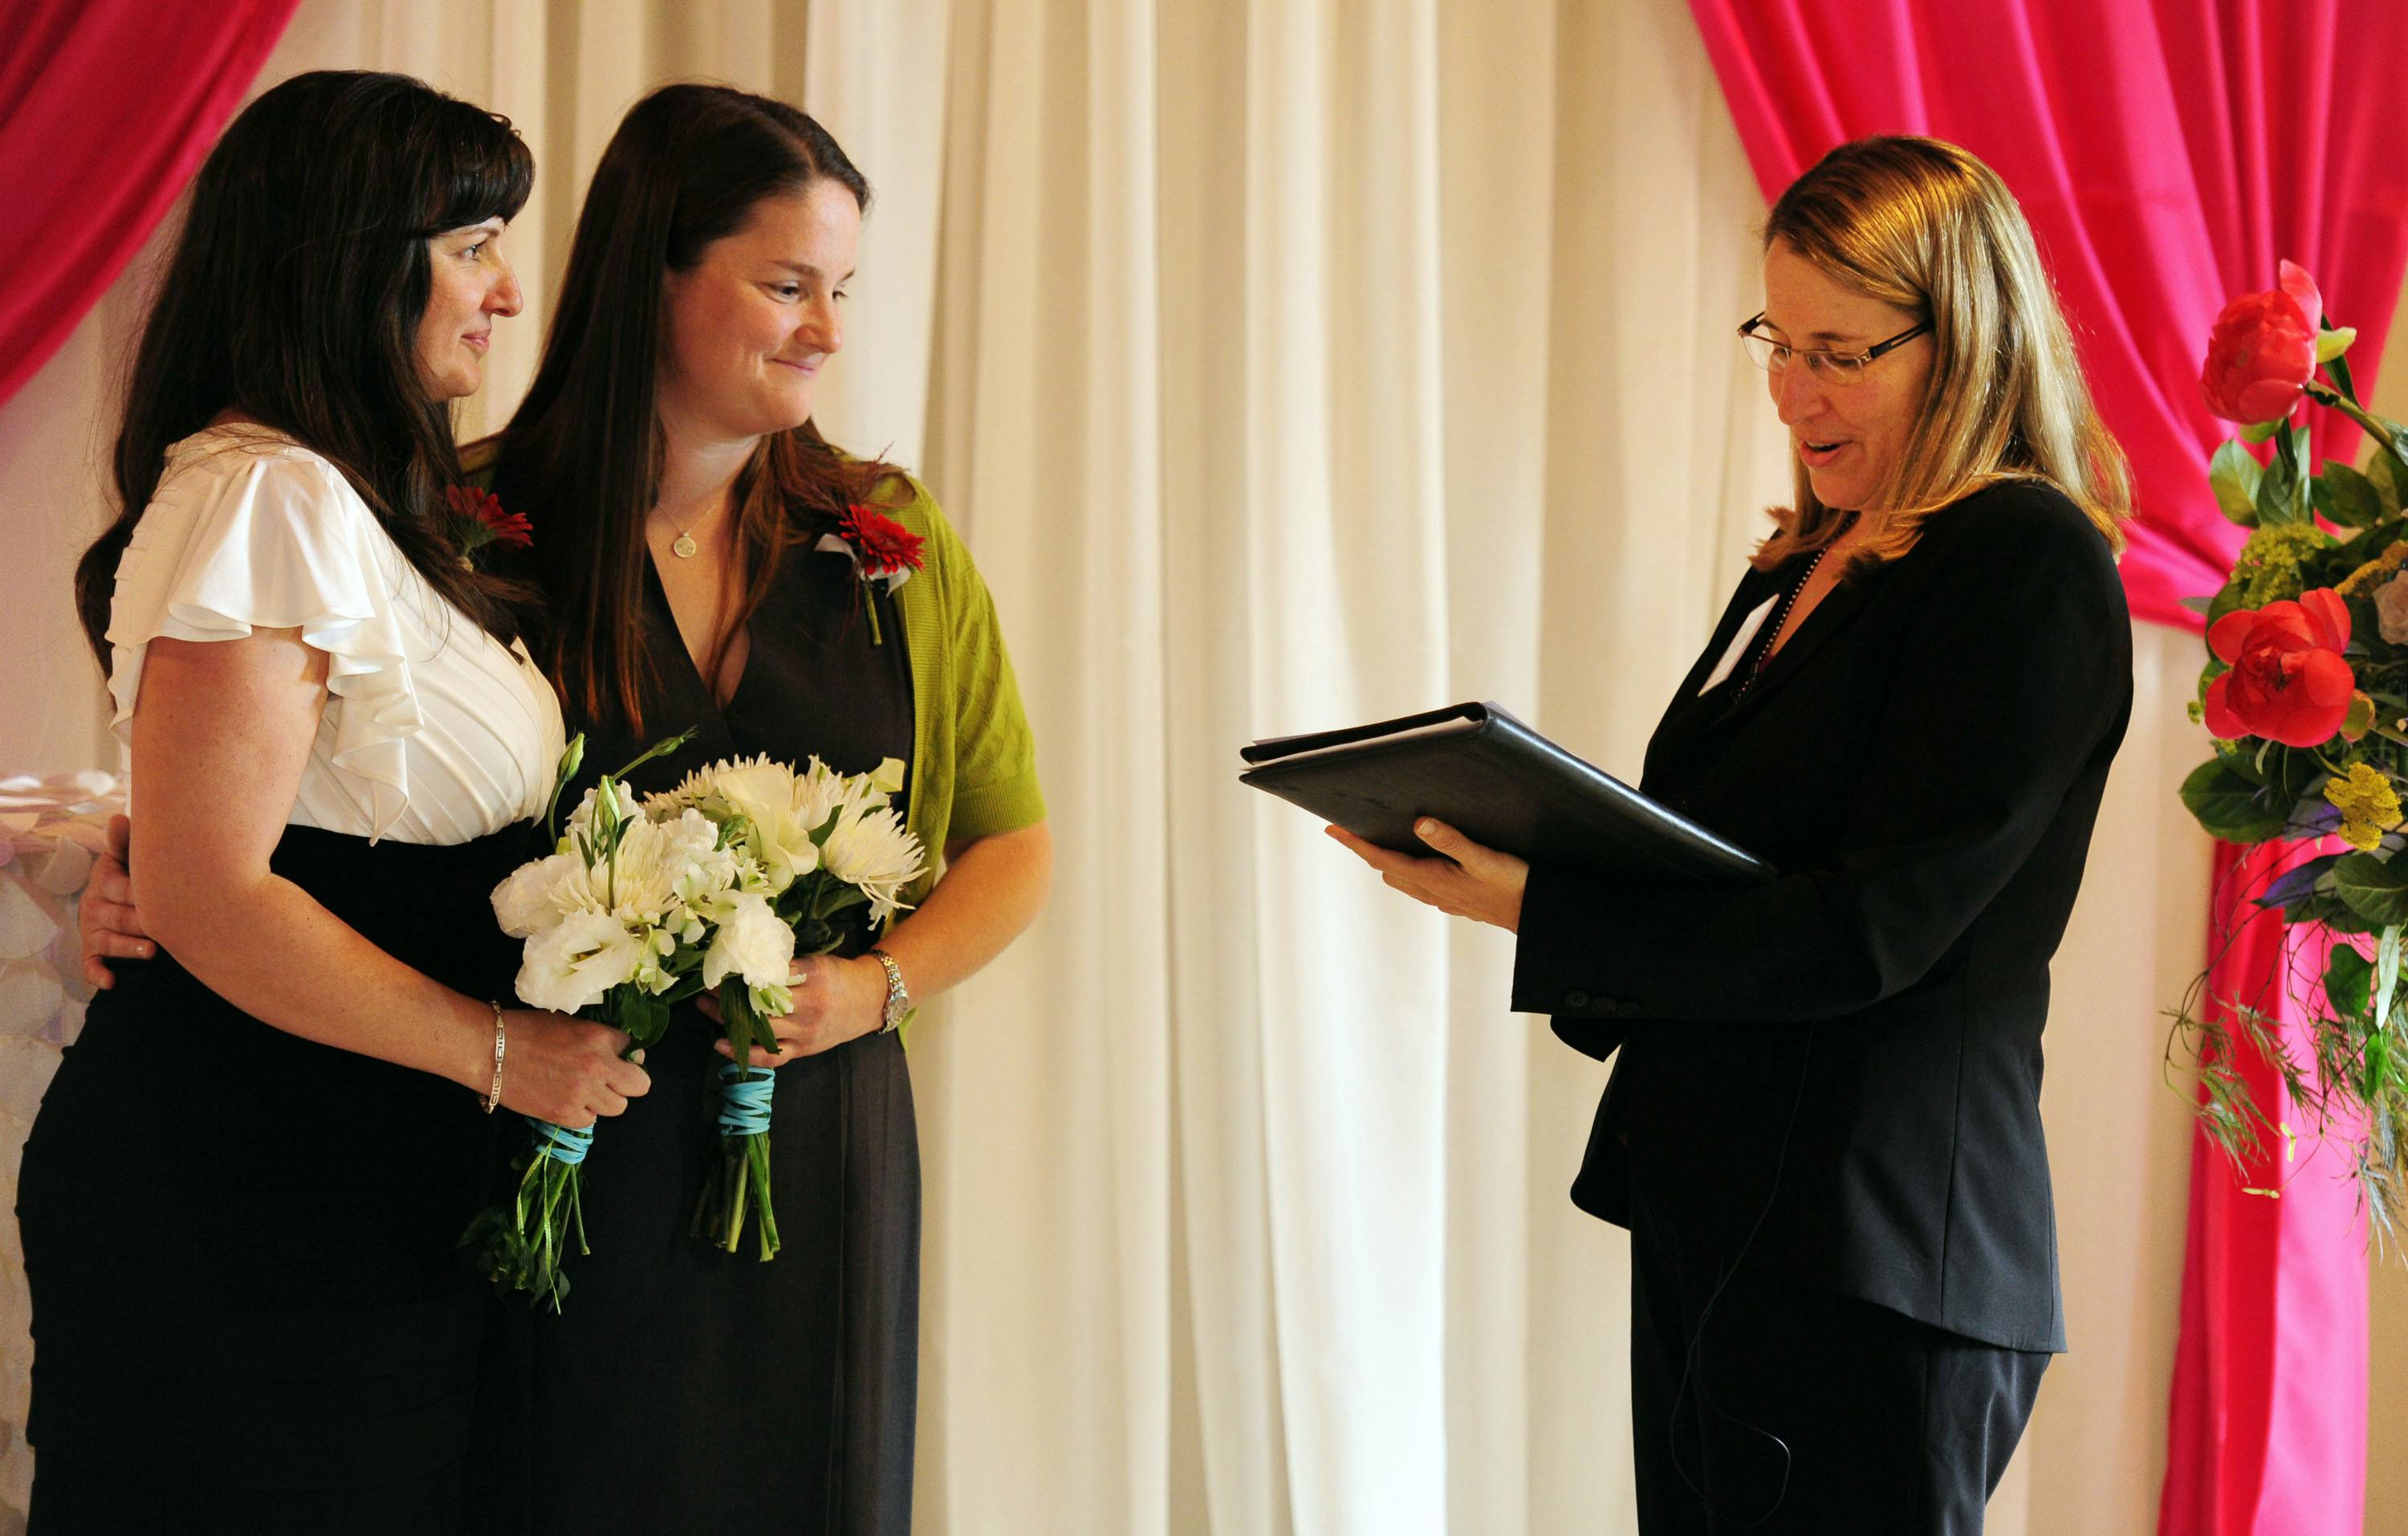 Dozens wed after Oregon gay marriage ruling